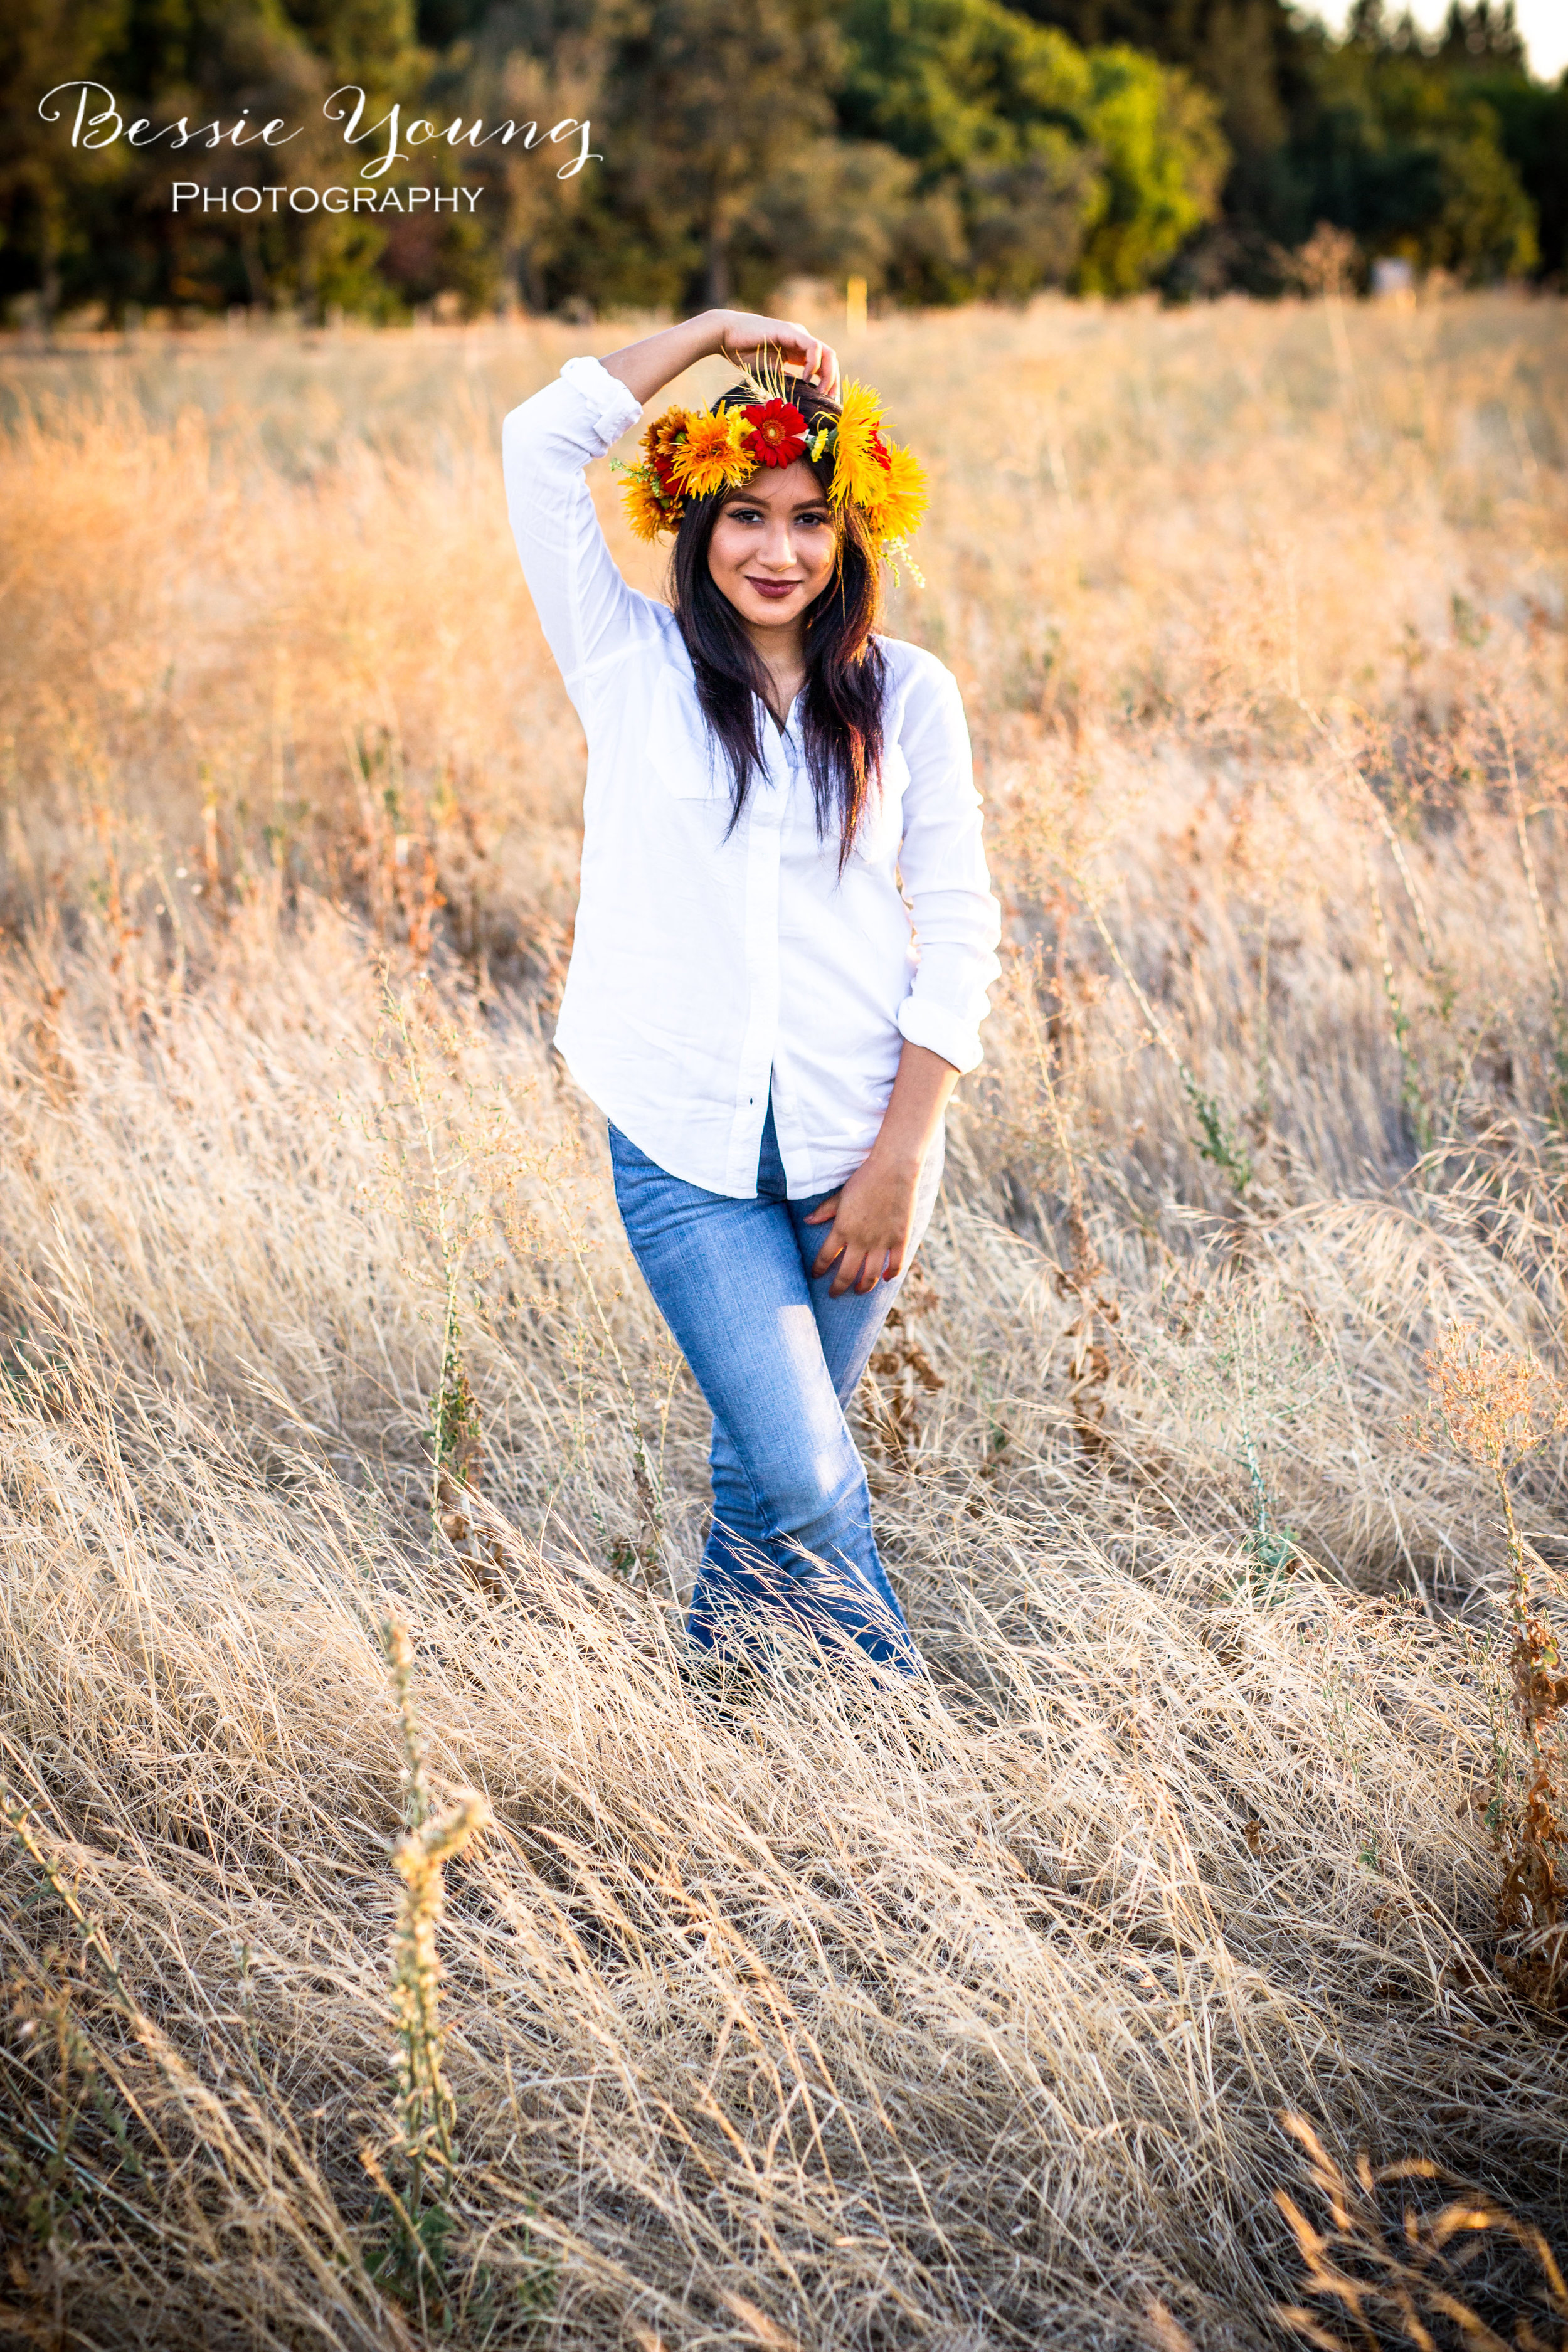 Woodward Park Portraits - Vargas - Bessie Young Photography-42.jpg